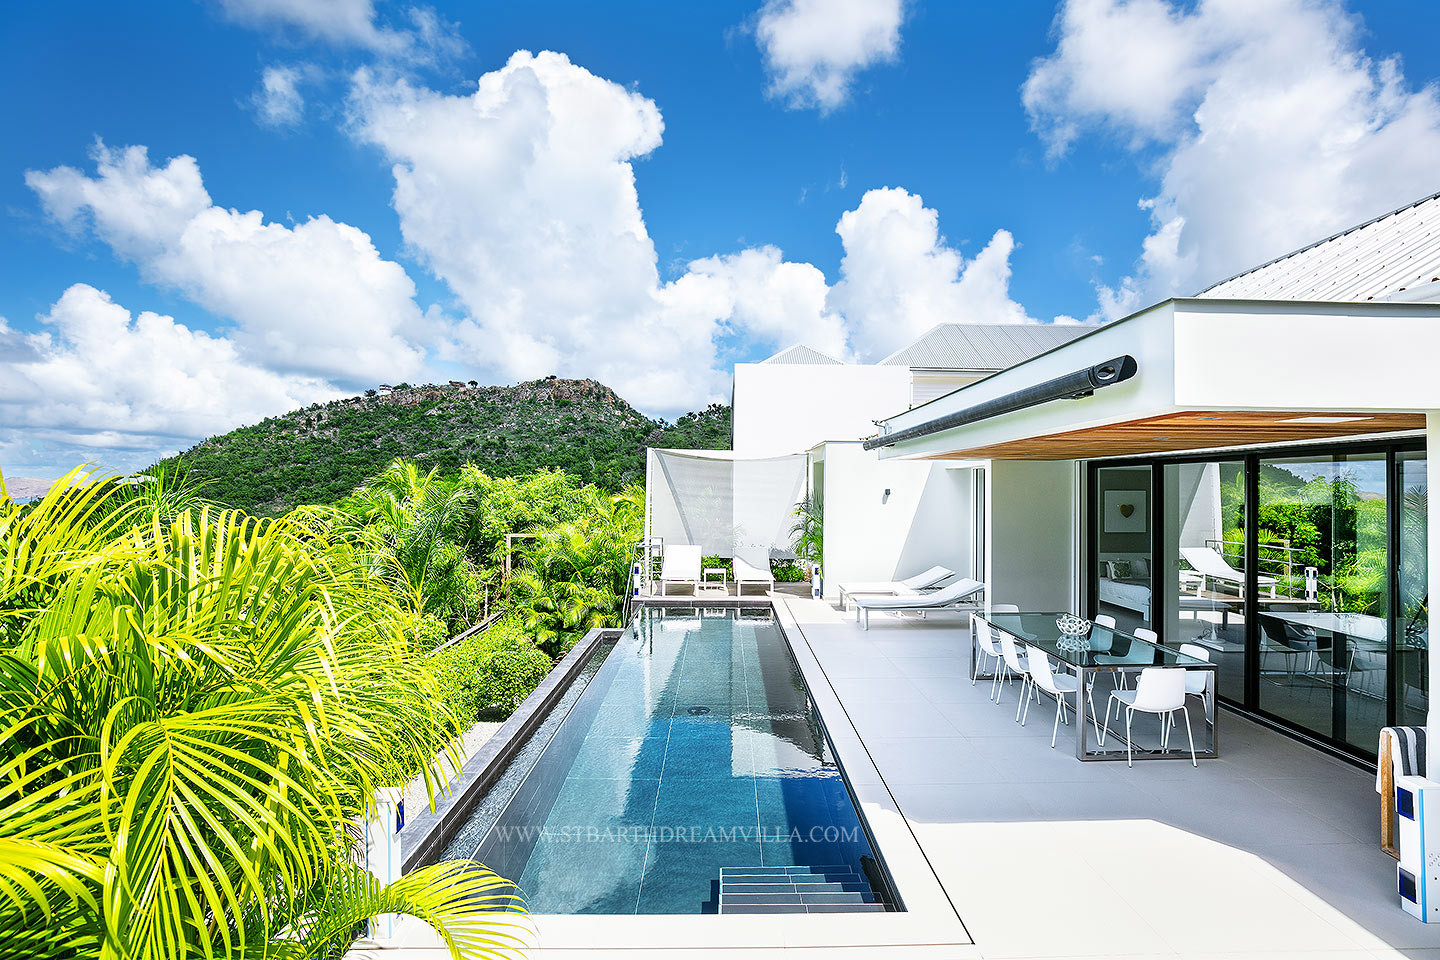 StBarths-Rental-Villa-StBarth-Real-Estat